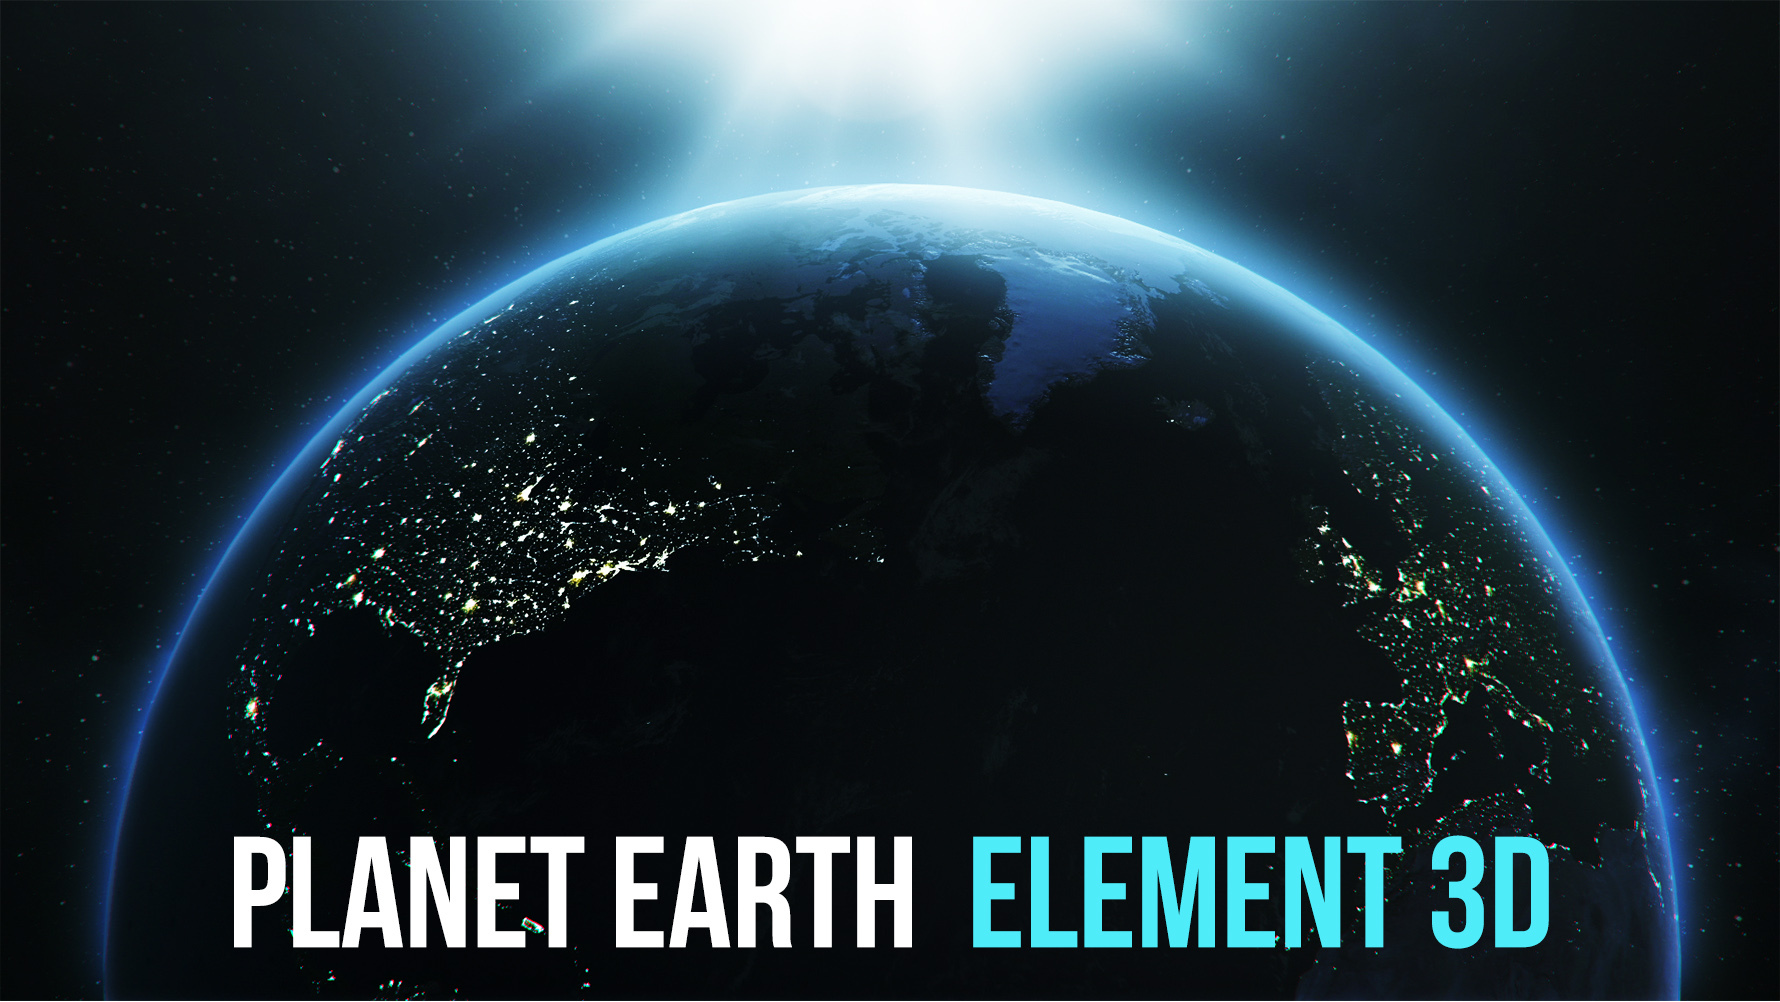 Realistic earth element 3d by pixelgem 3docean 1g sciox Gallery